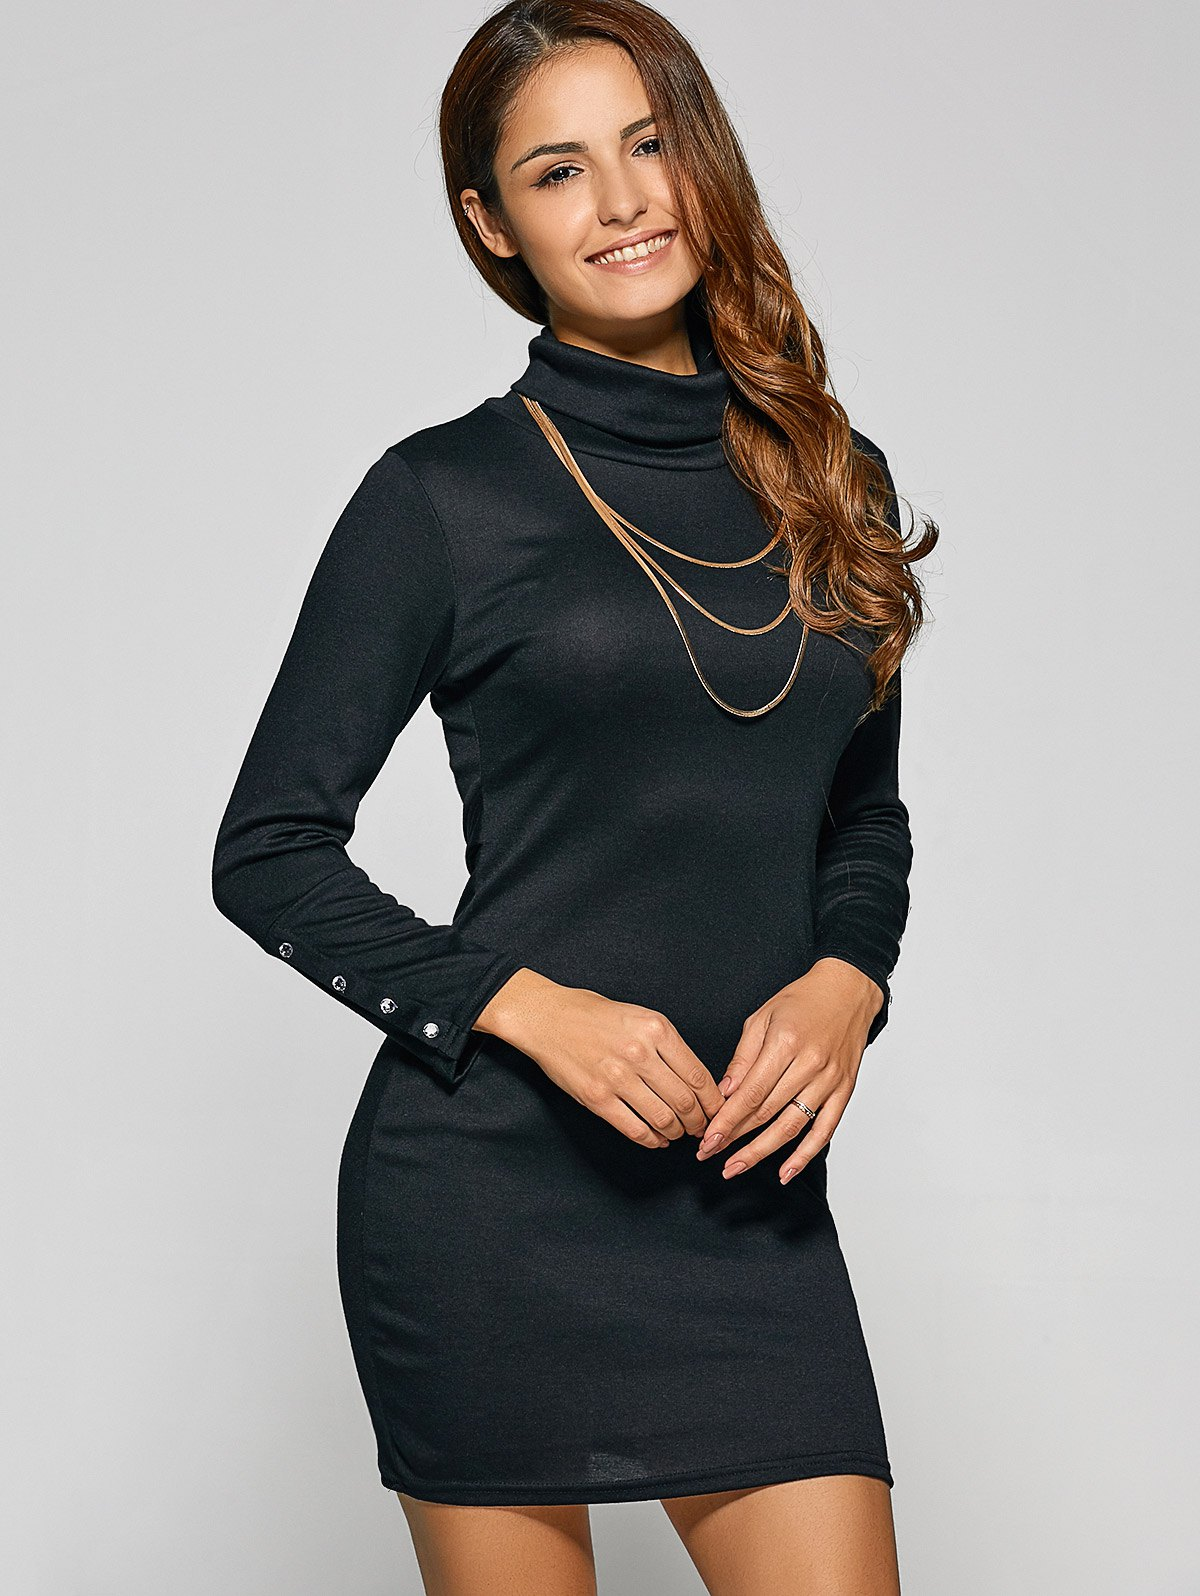 Brand black bodycon dress long sleeve low back queanbeyan and jackets